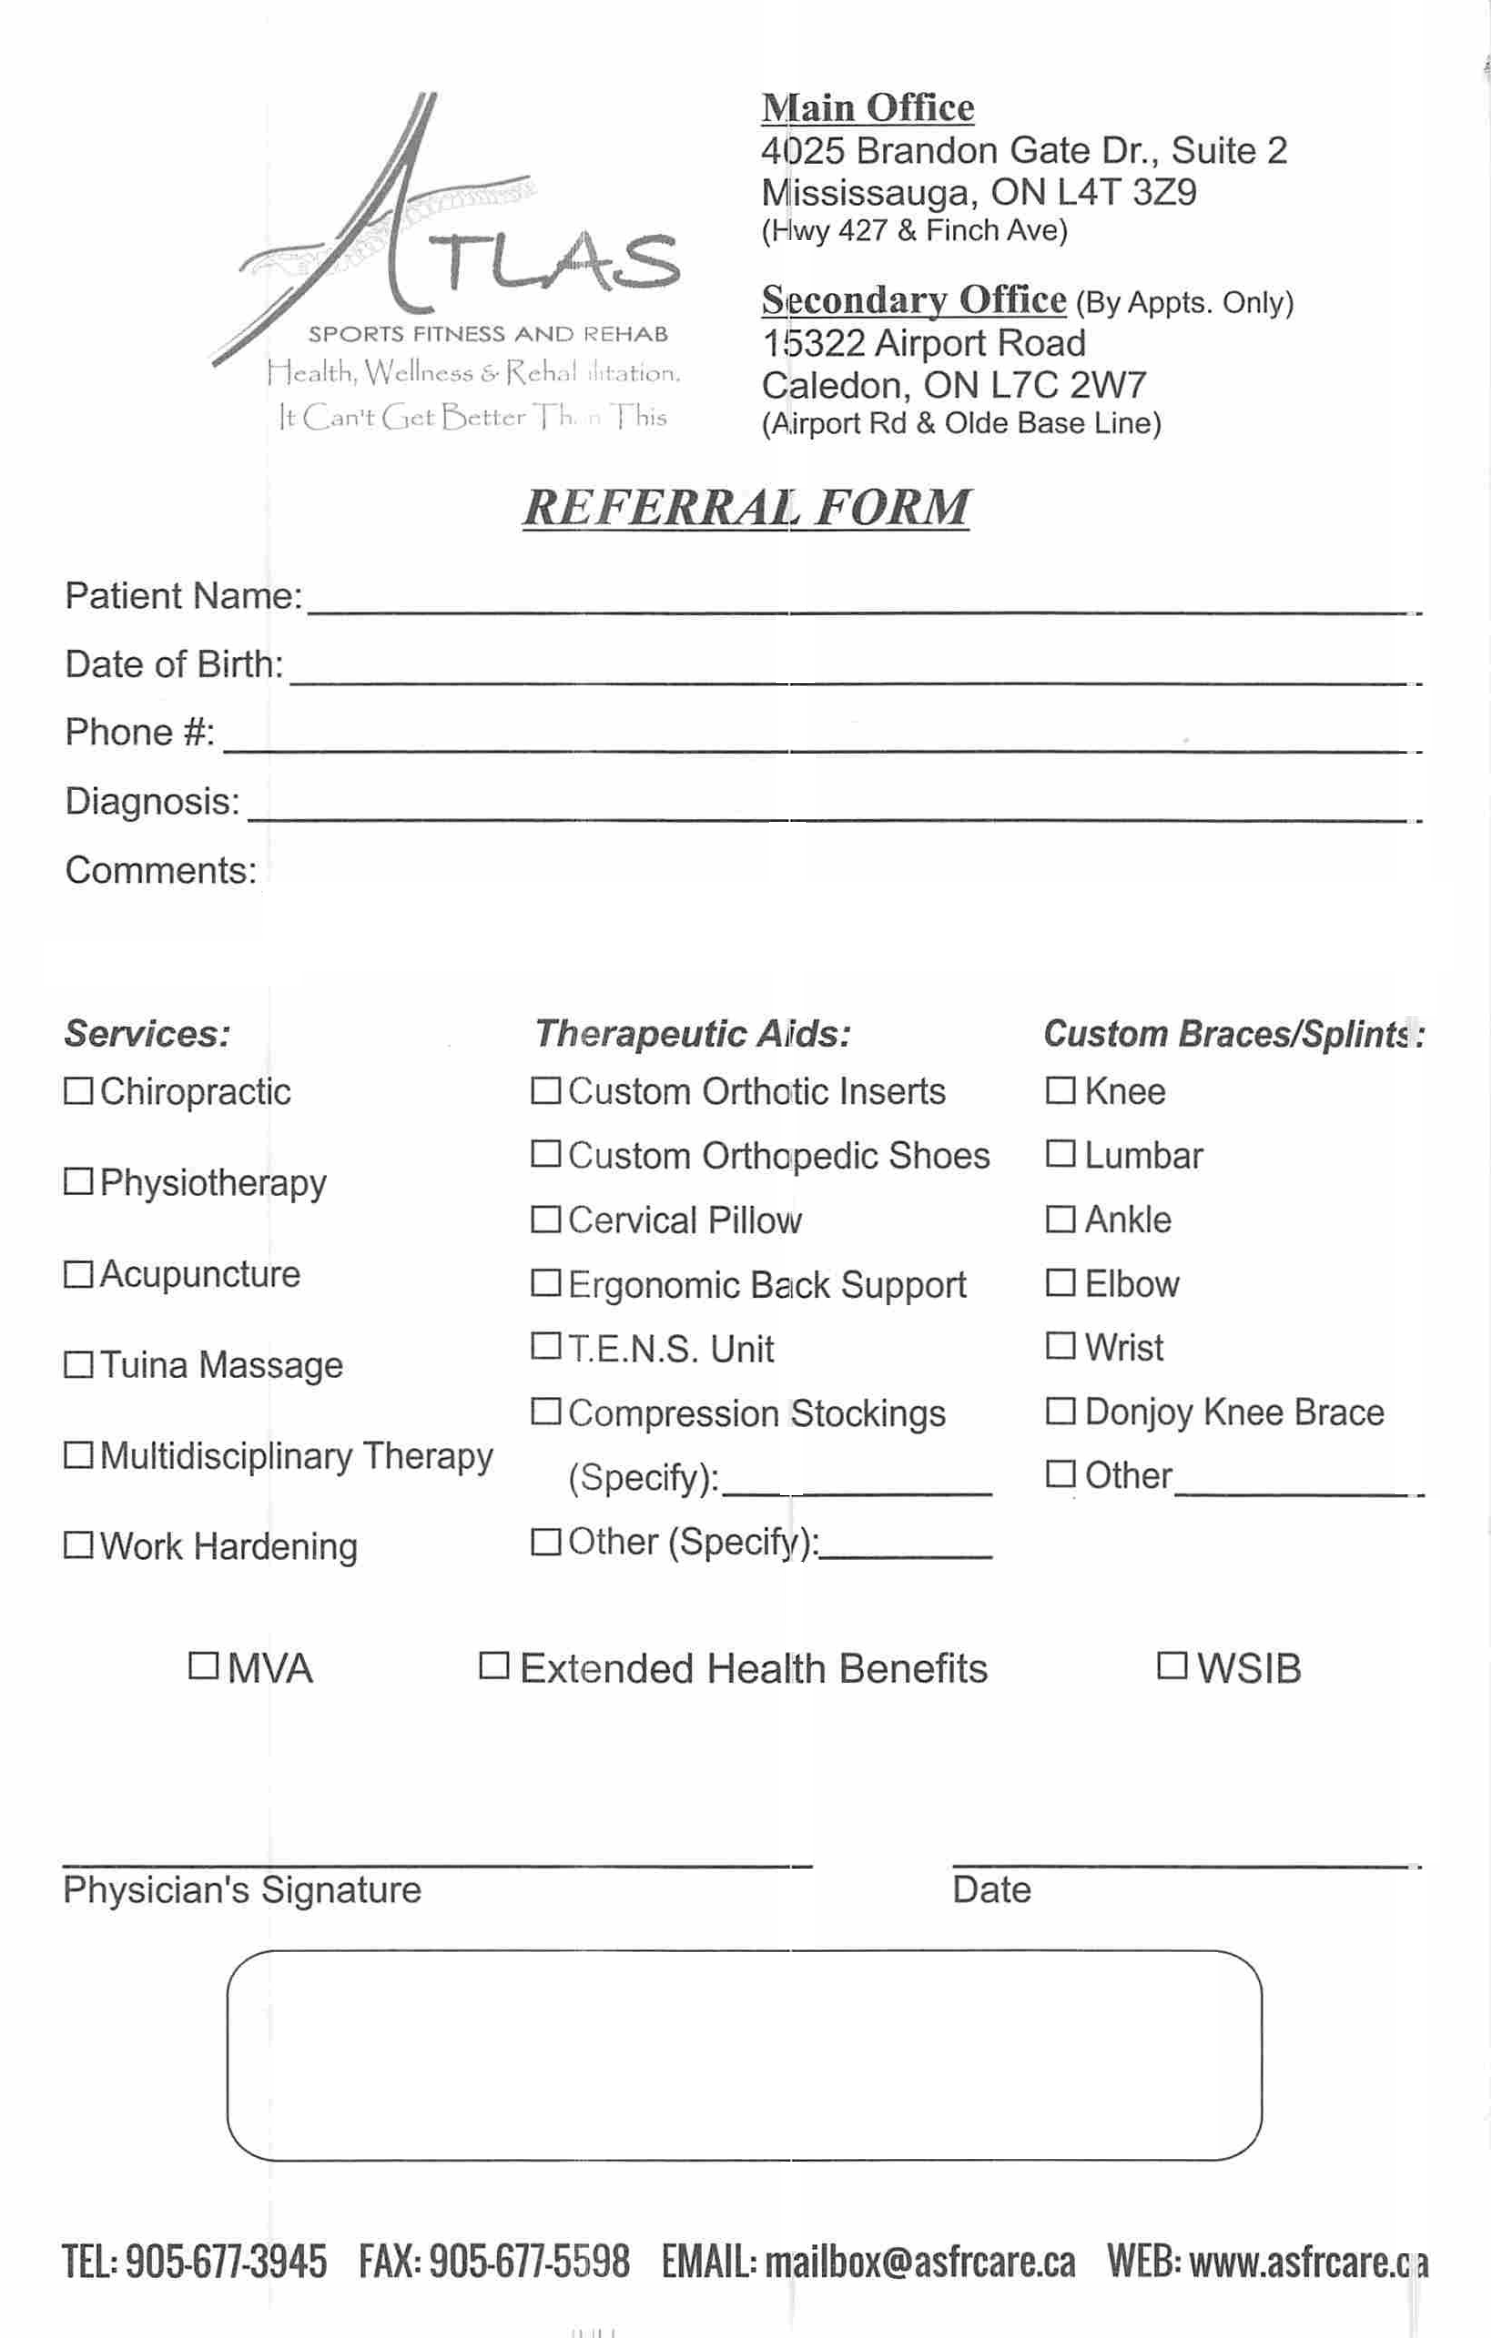 atlas sports fitness and rehab referral form - Referral Form